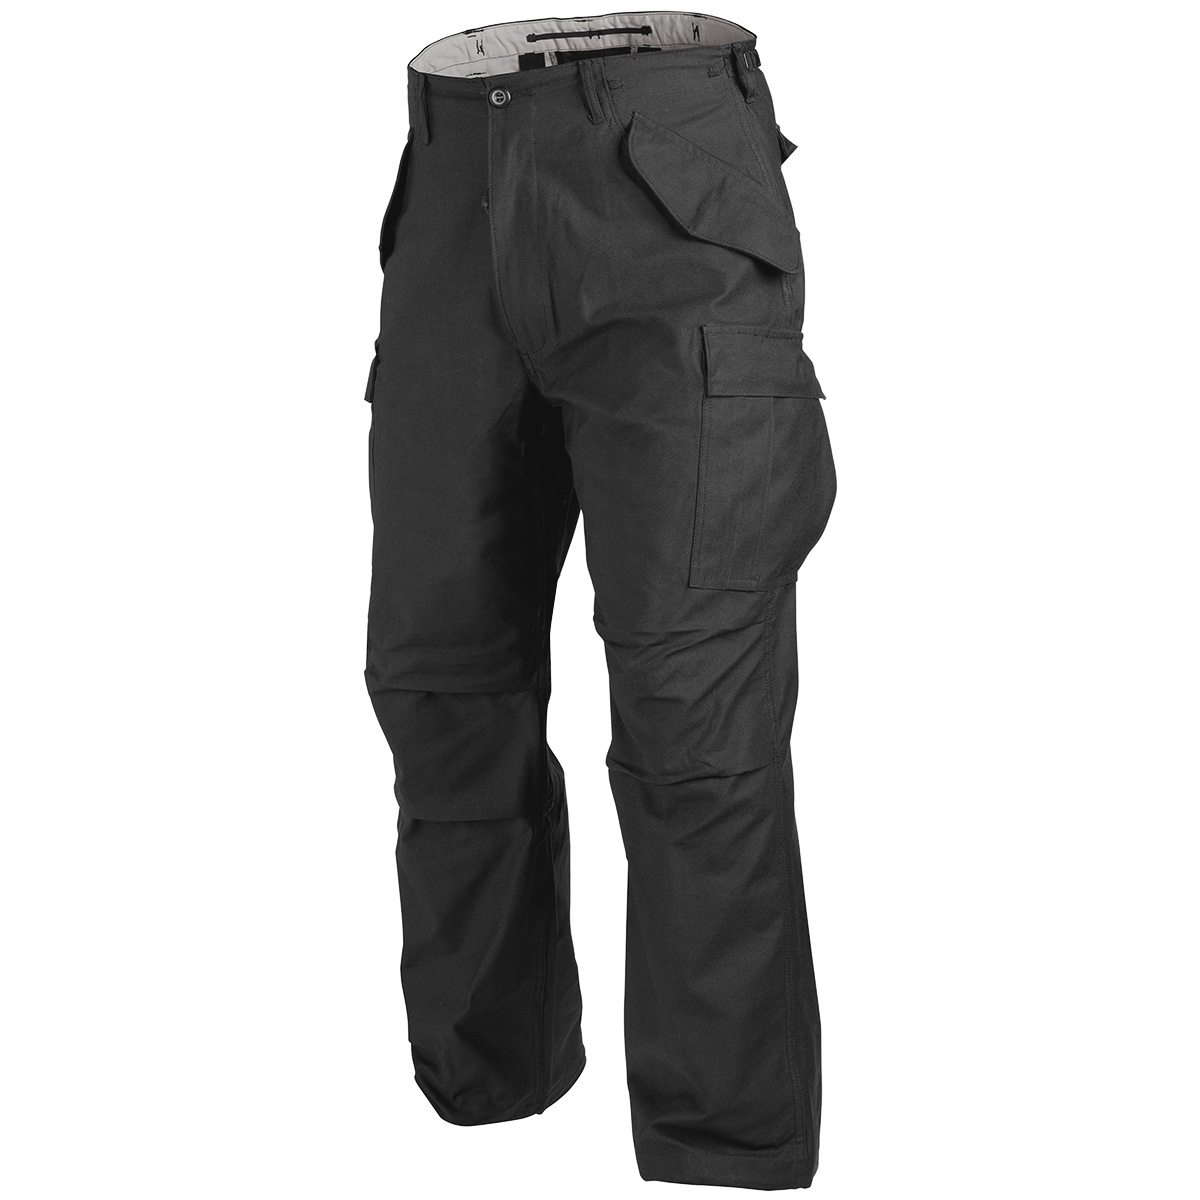 HELIKON GENUINE US M65 COMBAT CARGO MENS TROUSERS ARMY ...